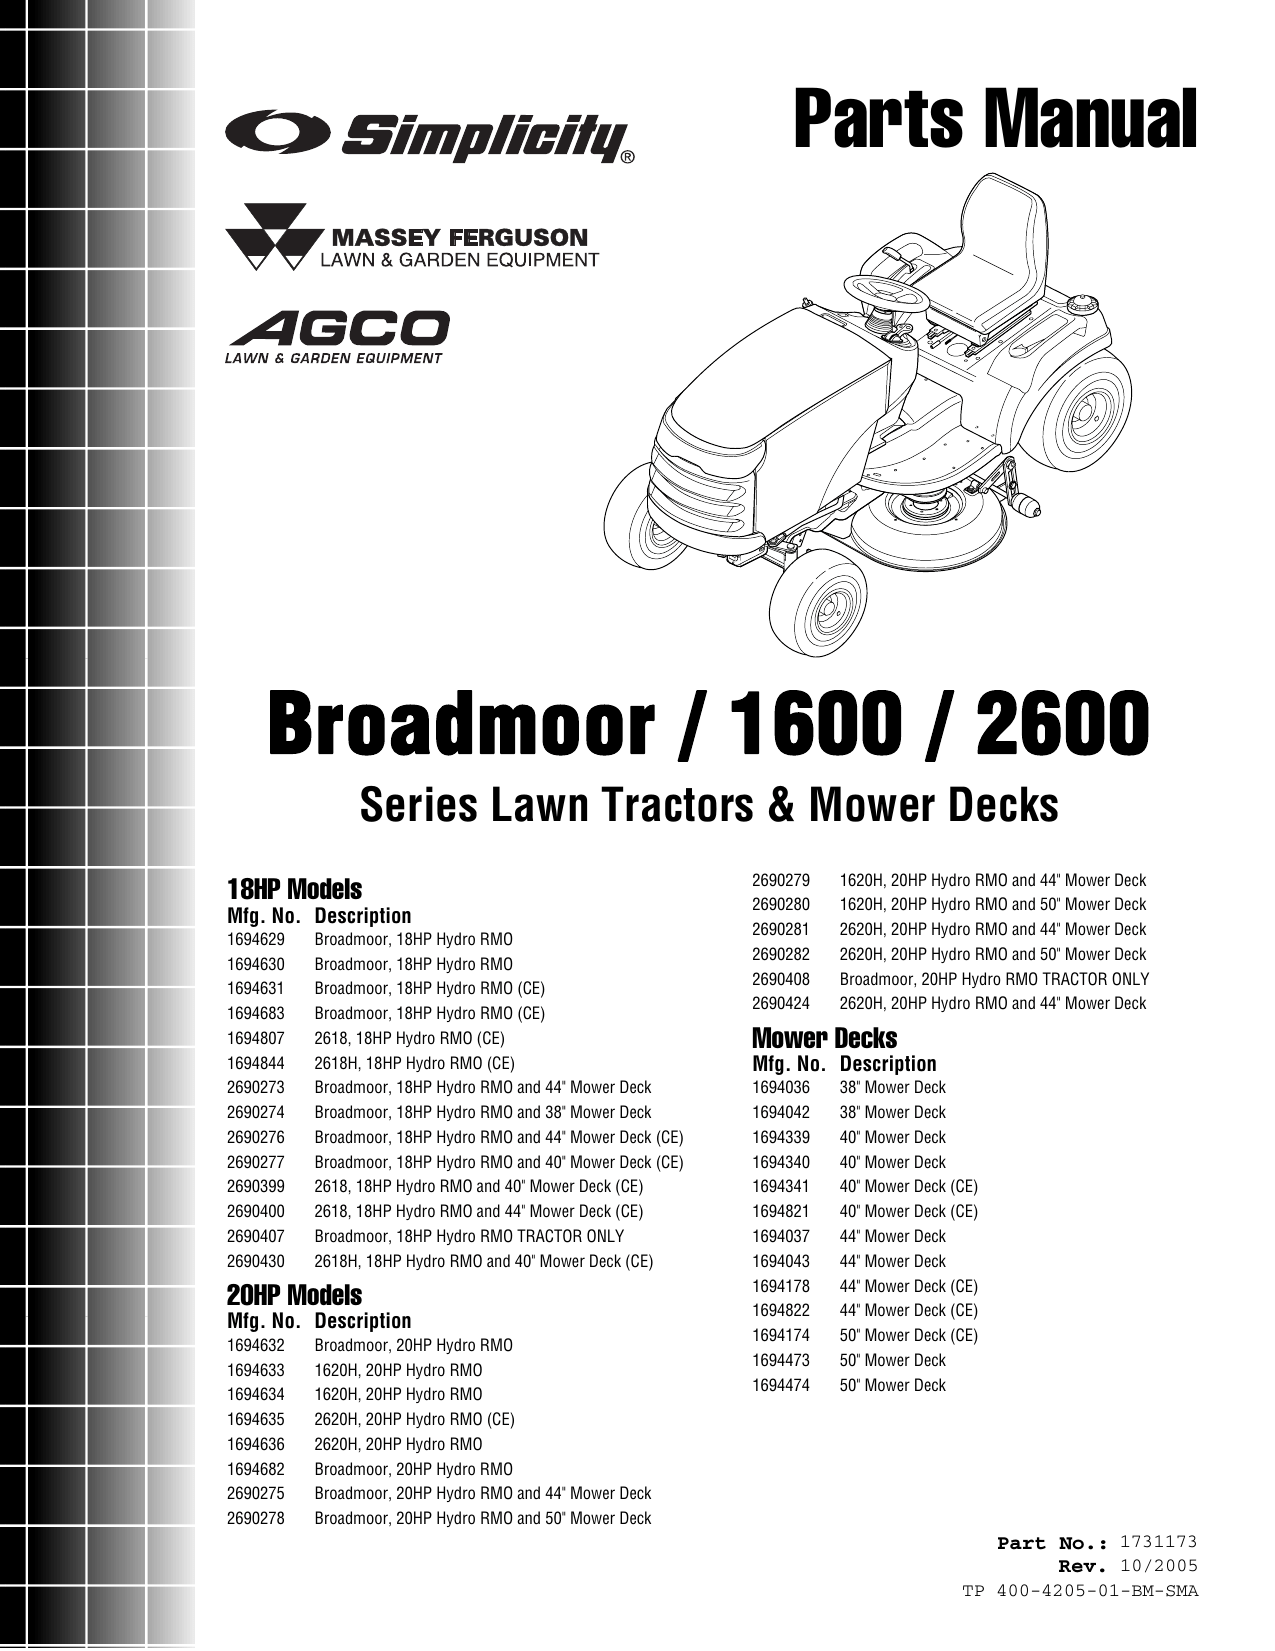 Simplicity Broadmoor 1600 Series Parts Manual / 2600